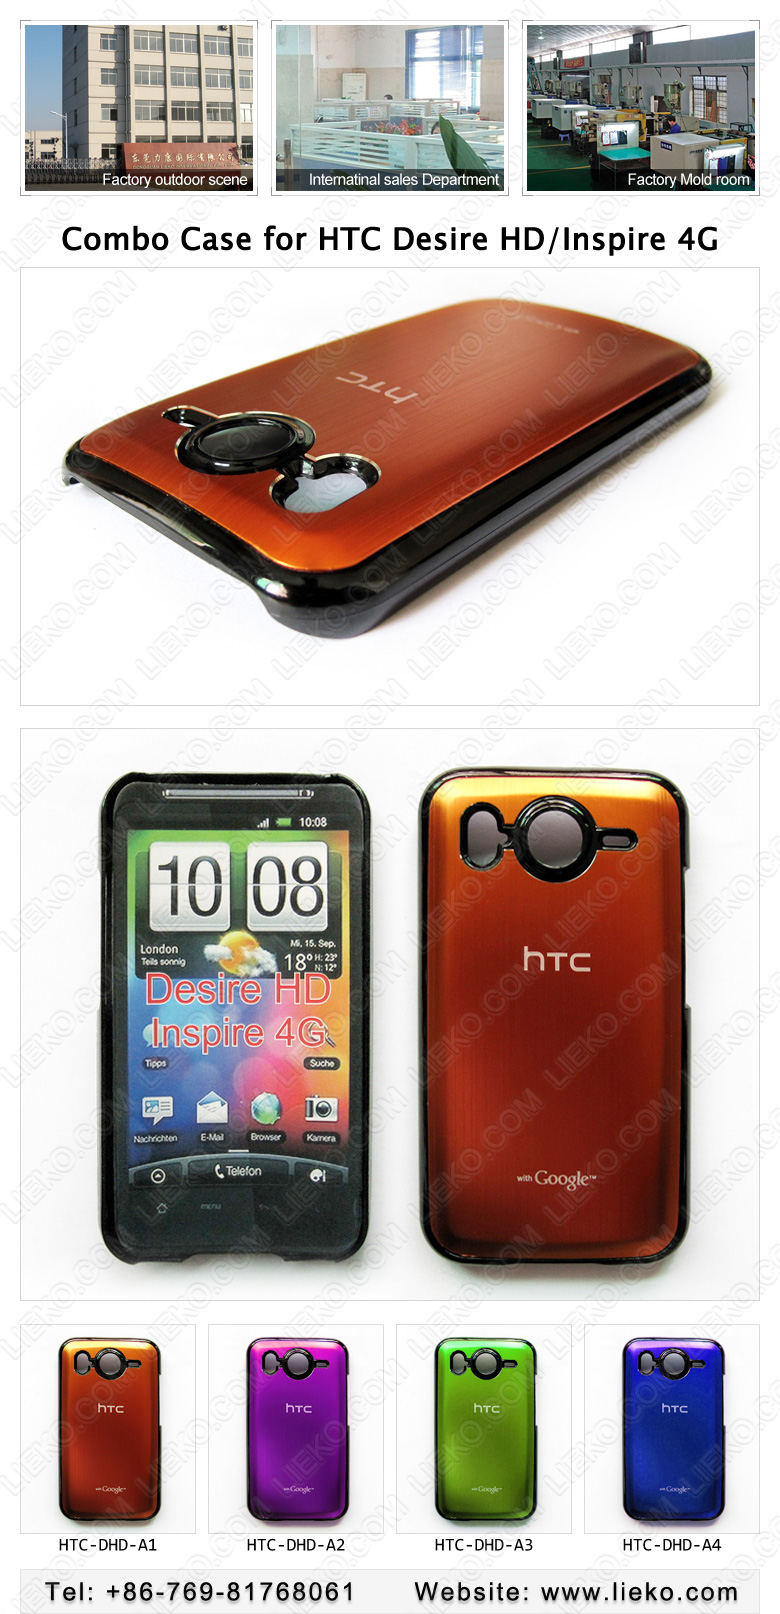 htc_desire_hd_inspire_4g_combo_case_htc-dhd-a_poster_1.jpg